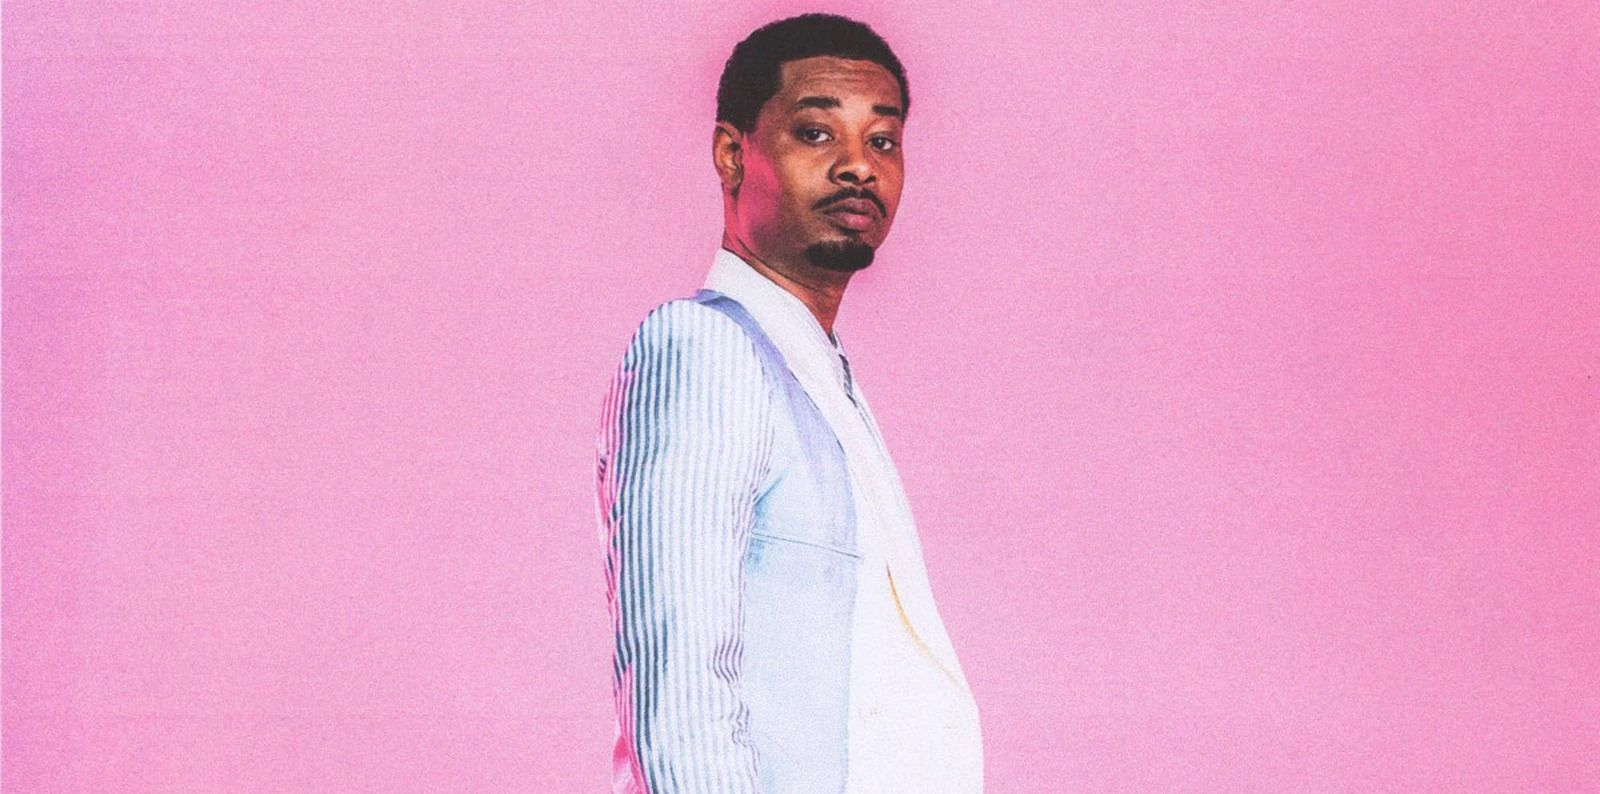 Danny Brown is a Gift to Humanity